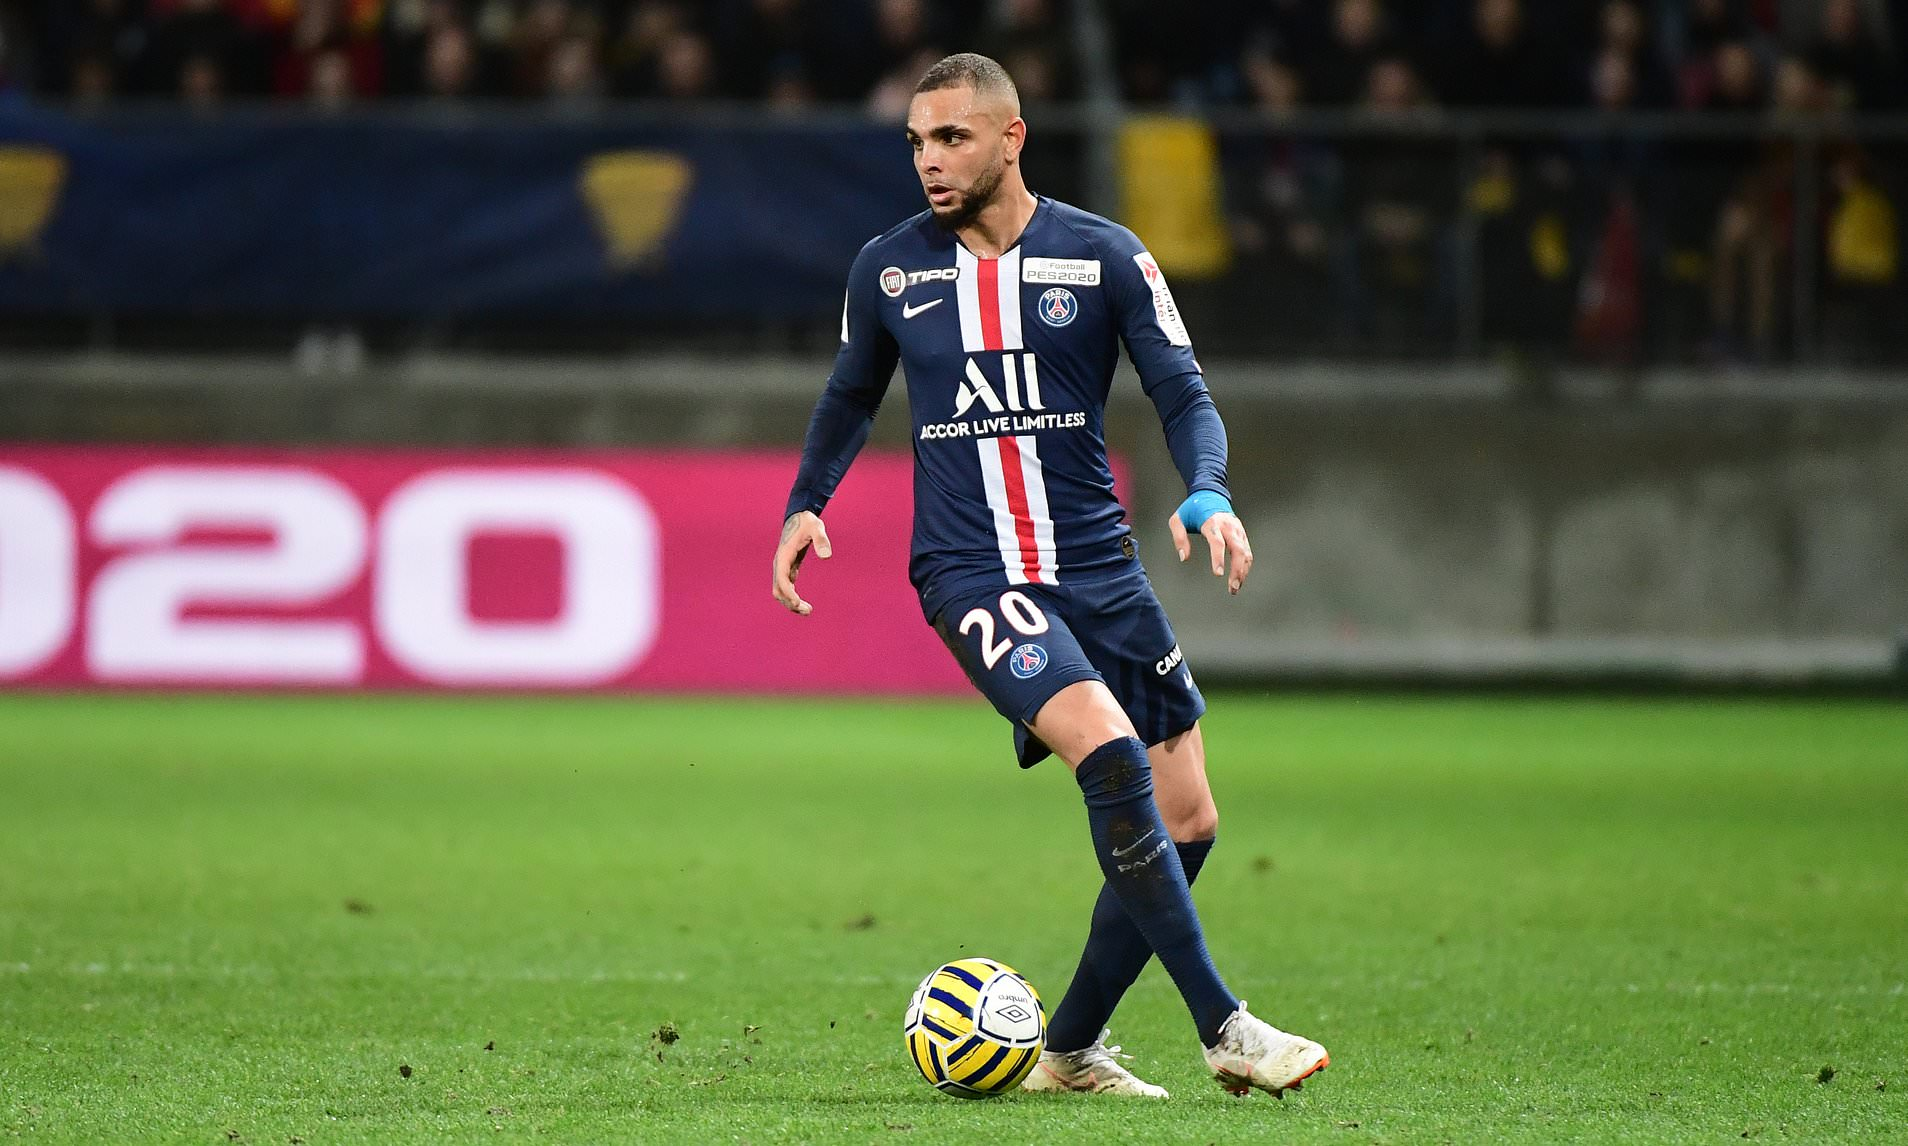 kurzawa-to-arsenal-is-close-from-psg